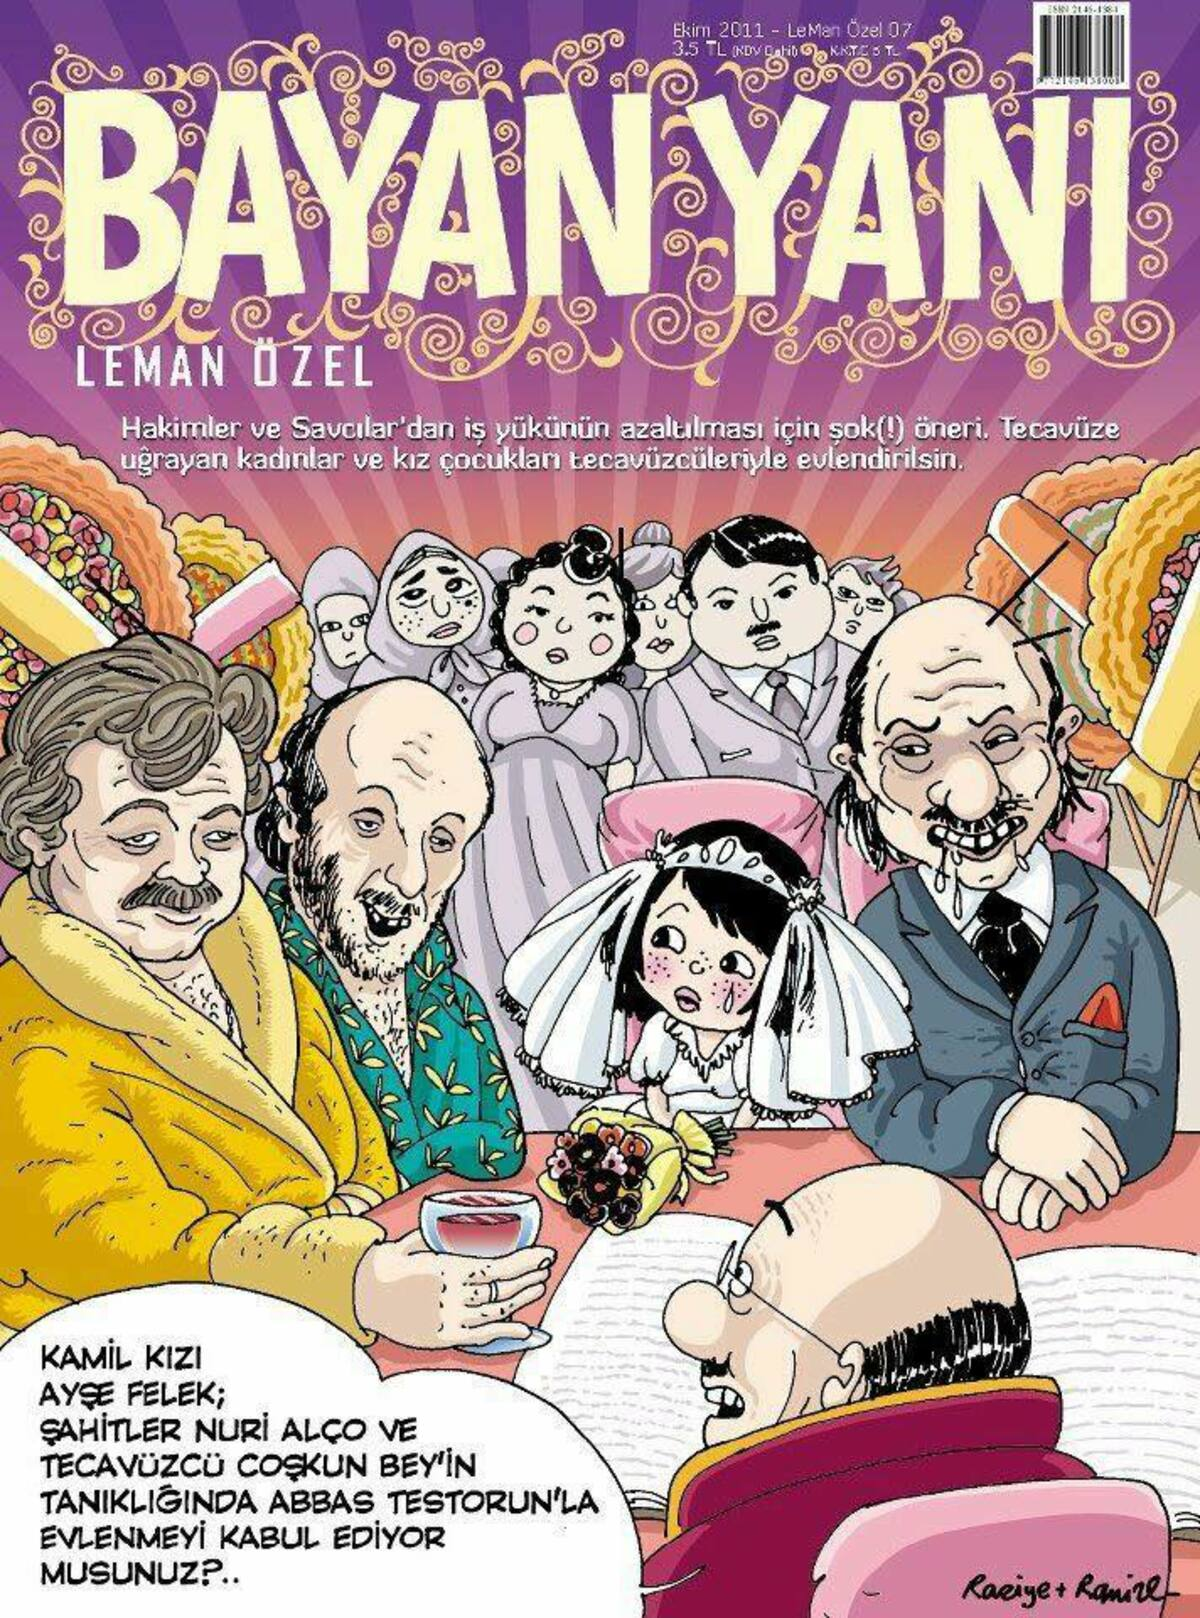 Cover from October 2011 of Bayan Yani by Ramize Erer illustrating the issue around women and girls forced to marry their rapist.